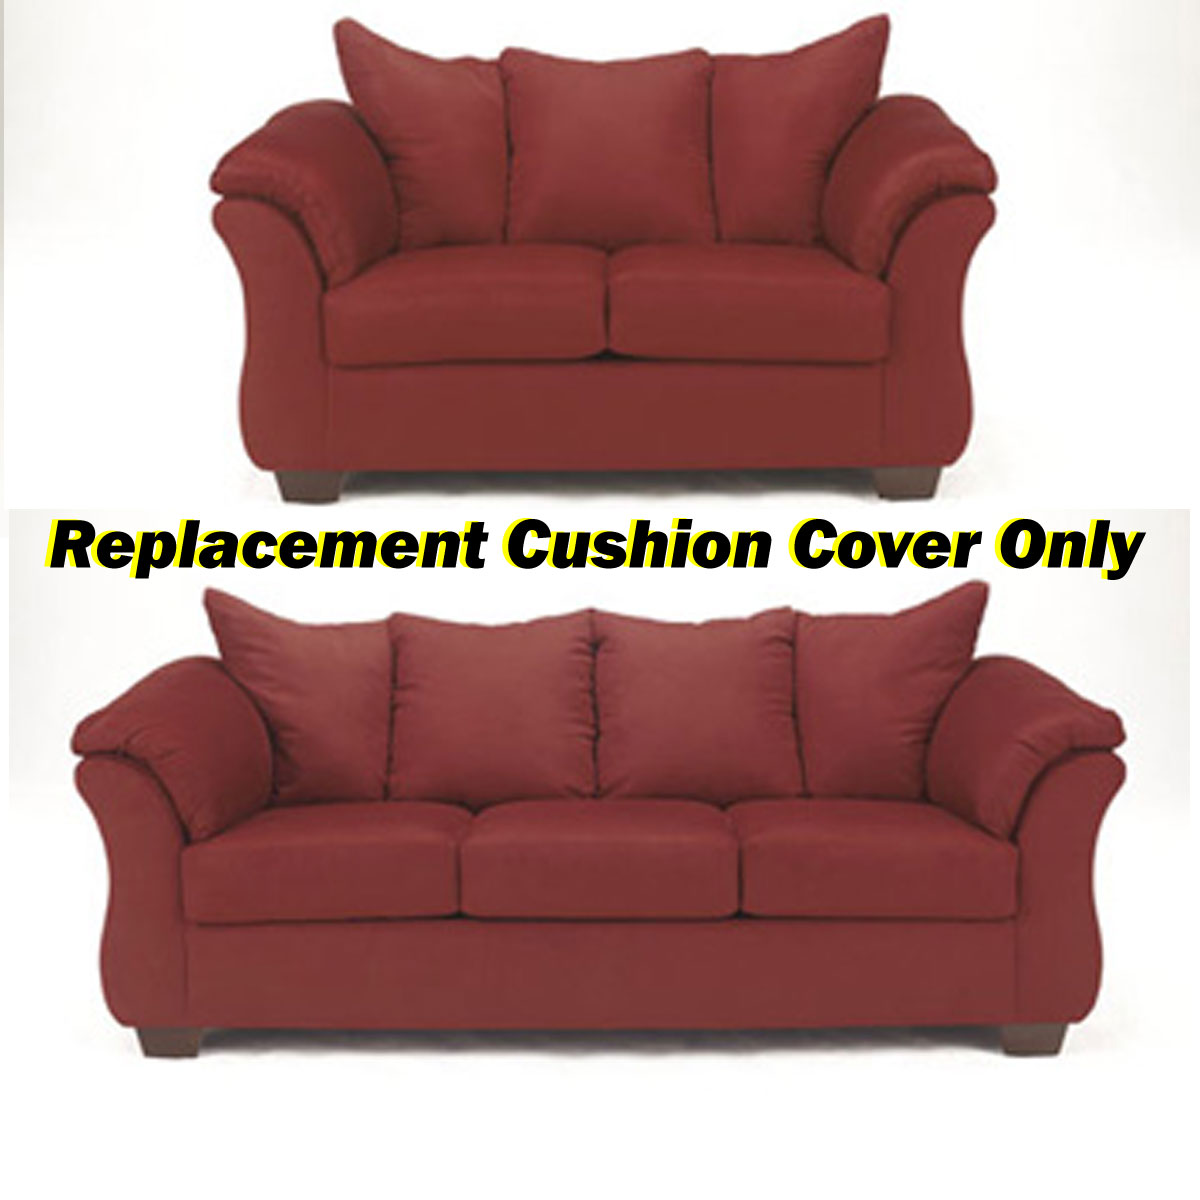 Ashley darcy replacement cushion cover only 7500138 or 7500135 salsa Loveseat cushion covers